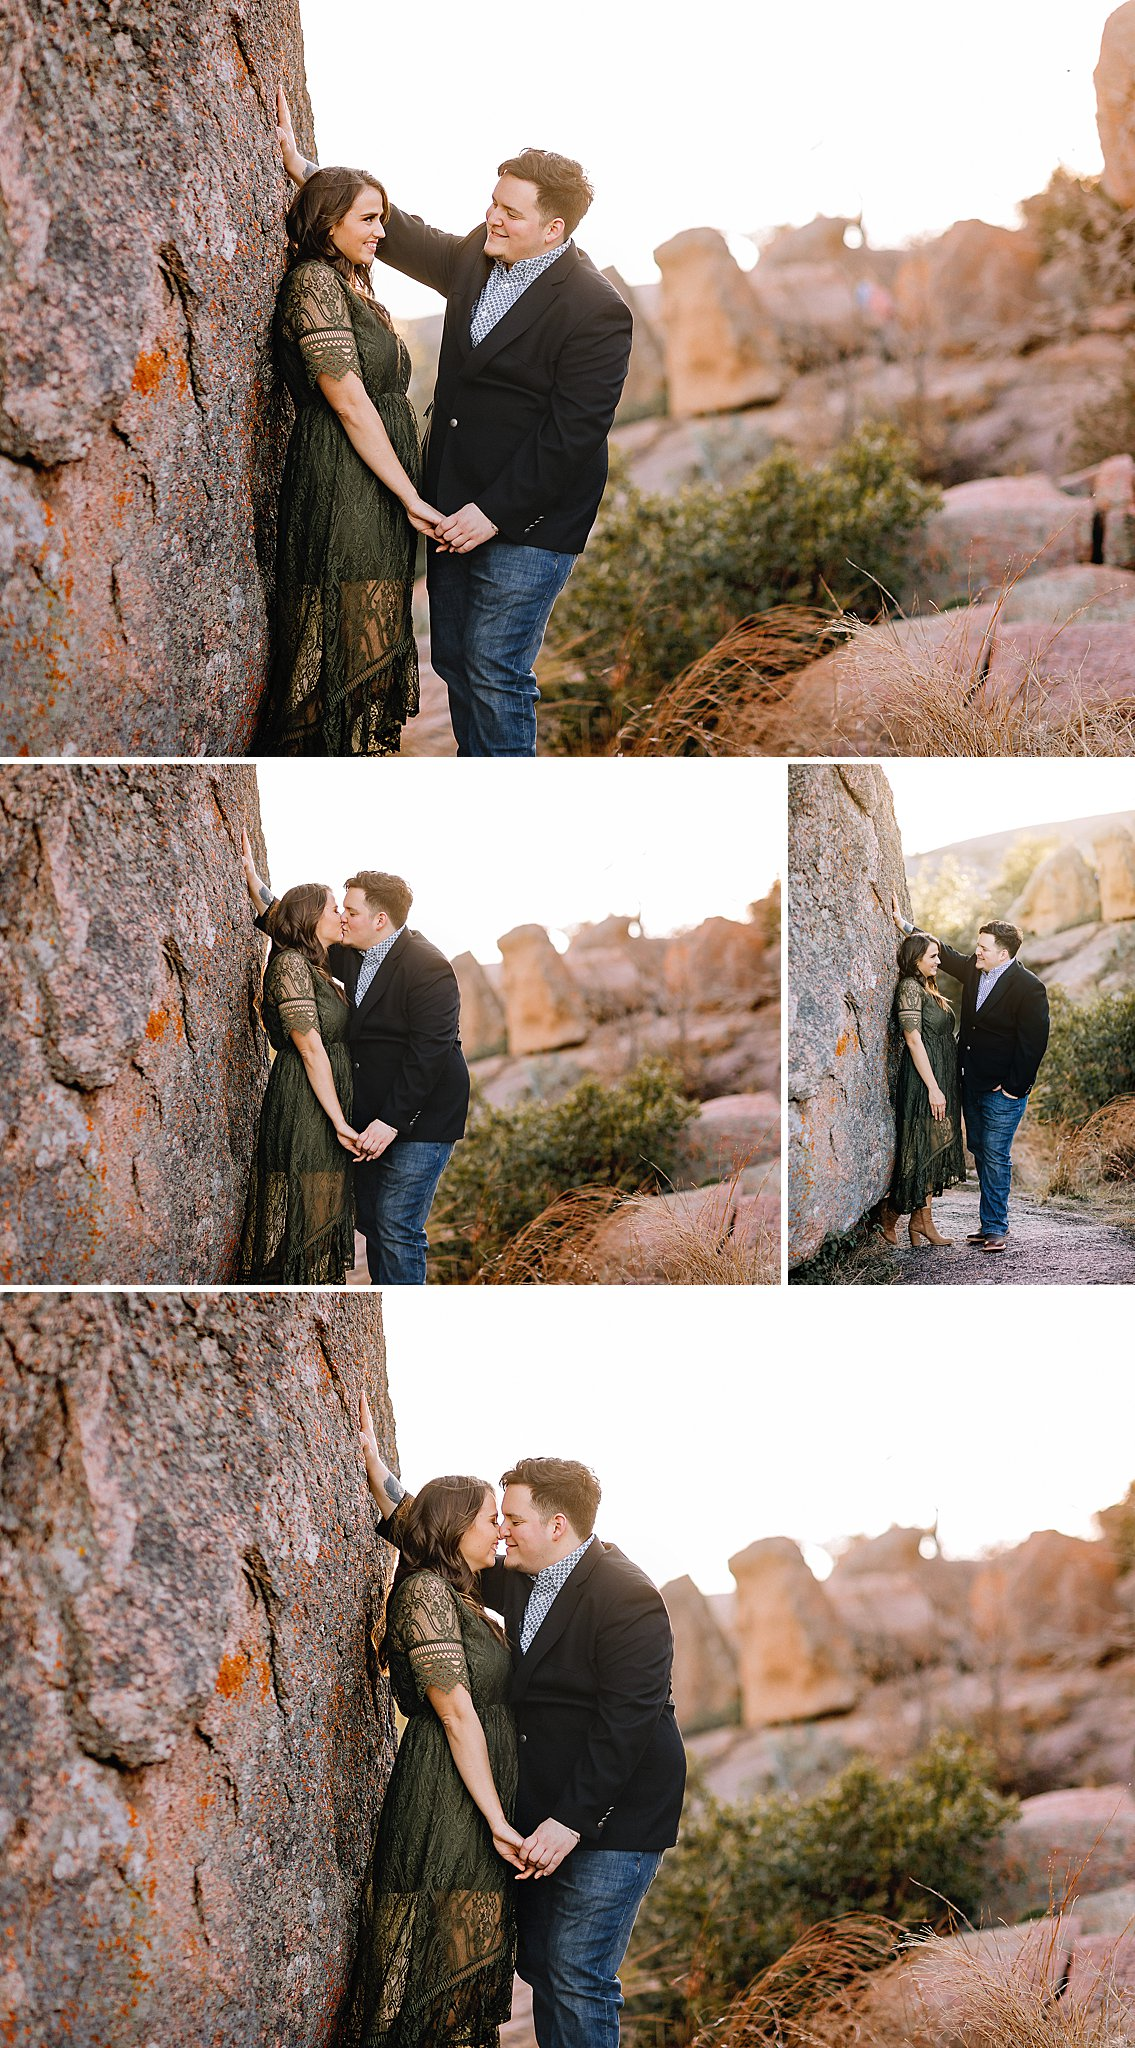 Carly-Barton-Photography-Fredericksburg-Texas-Engagement-Session-Enchanted-Rock-Photos_0010.jpg